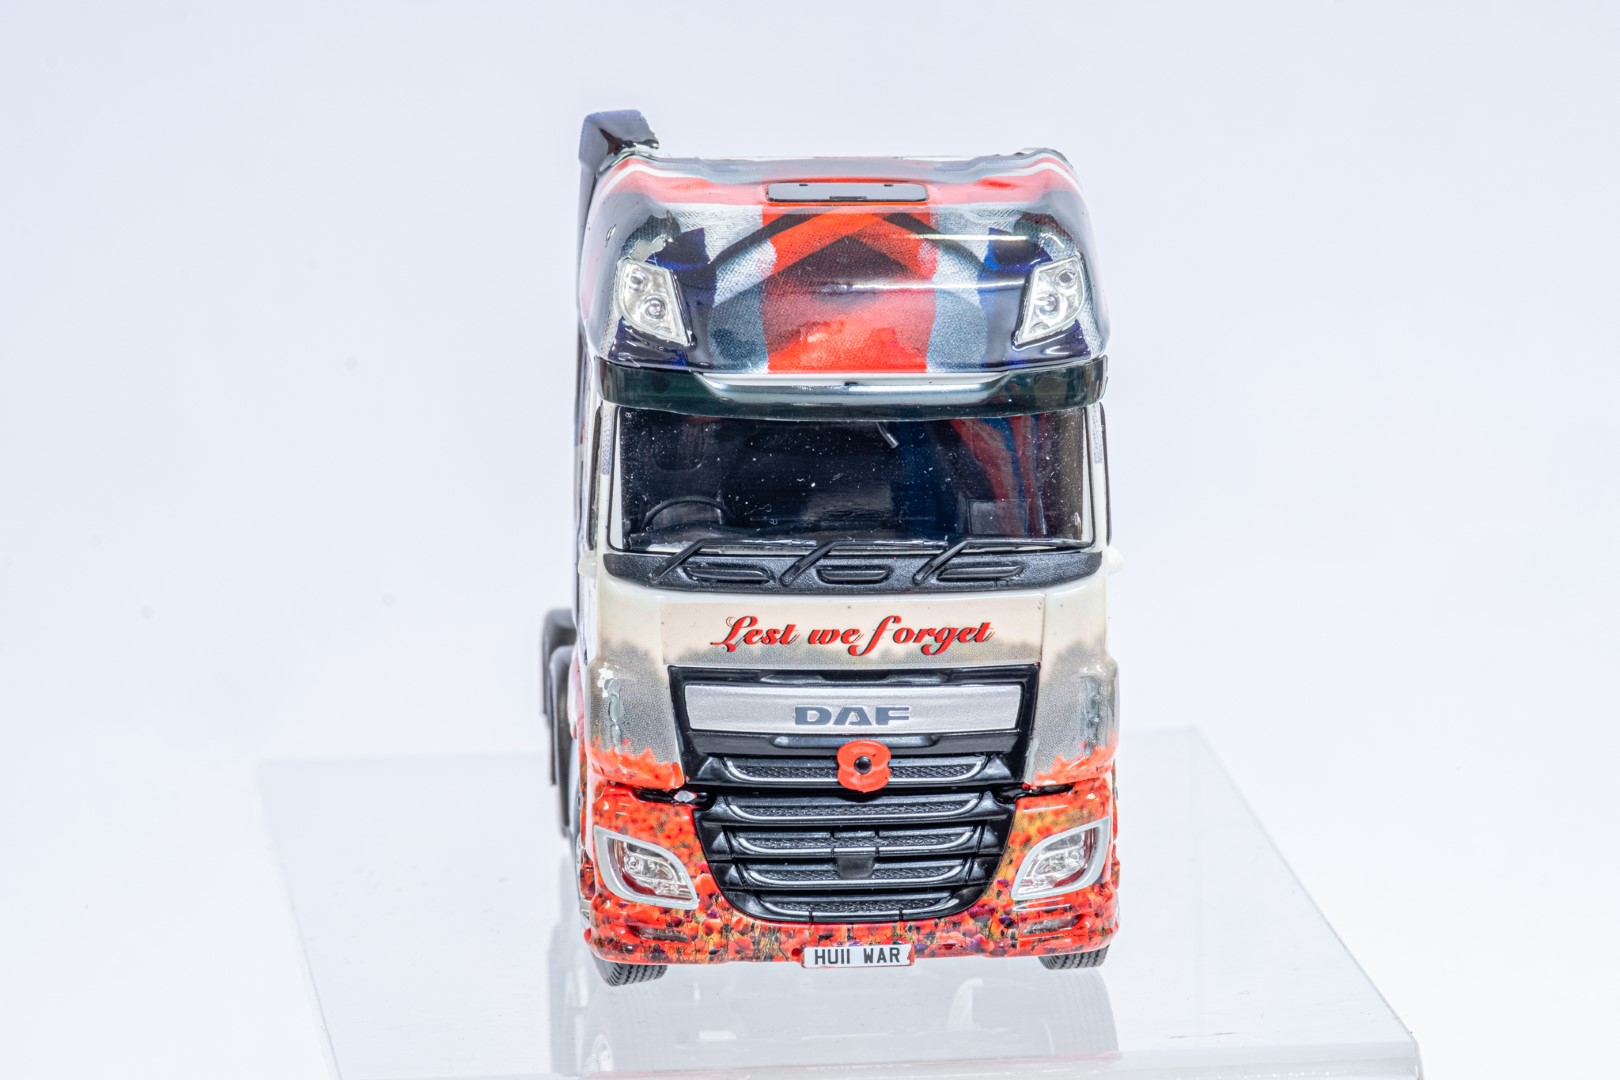 Tekno The Poppy Truck - DAF Tractor Unit In Gift Box - Image 9 of 9